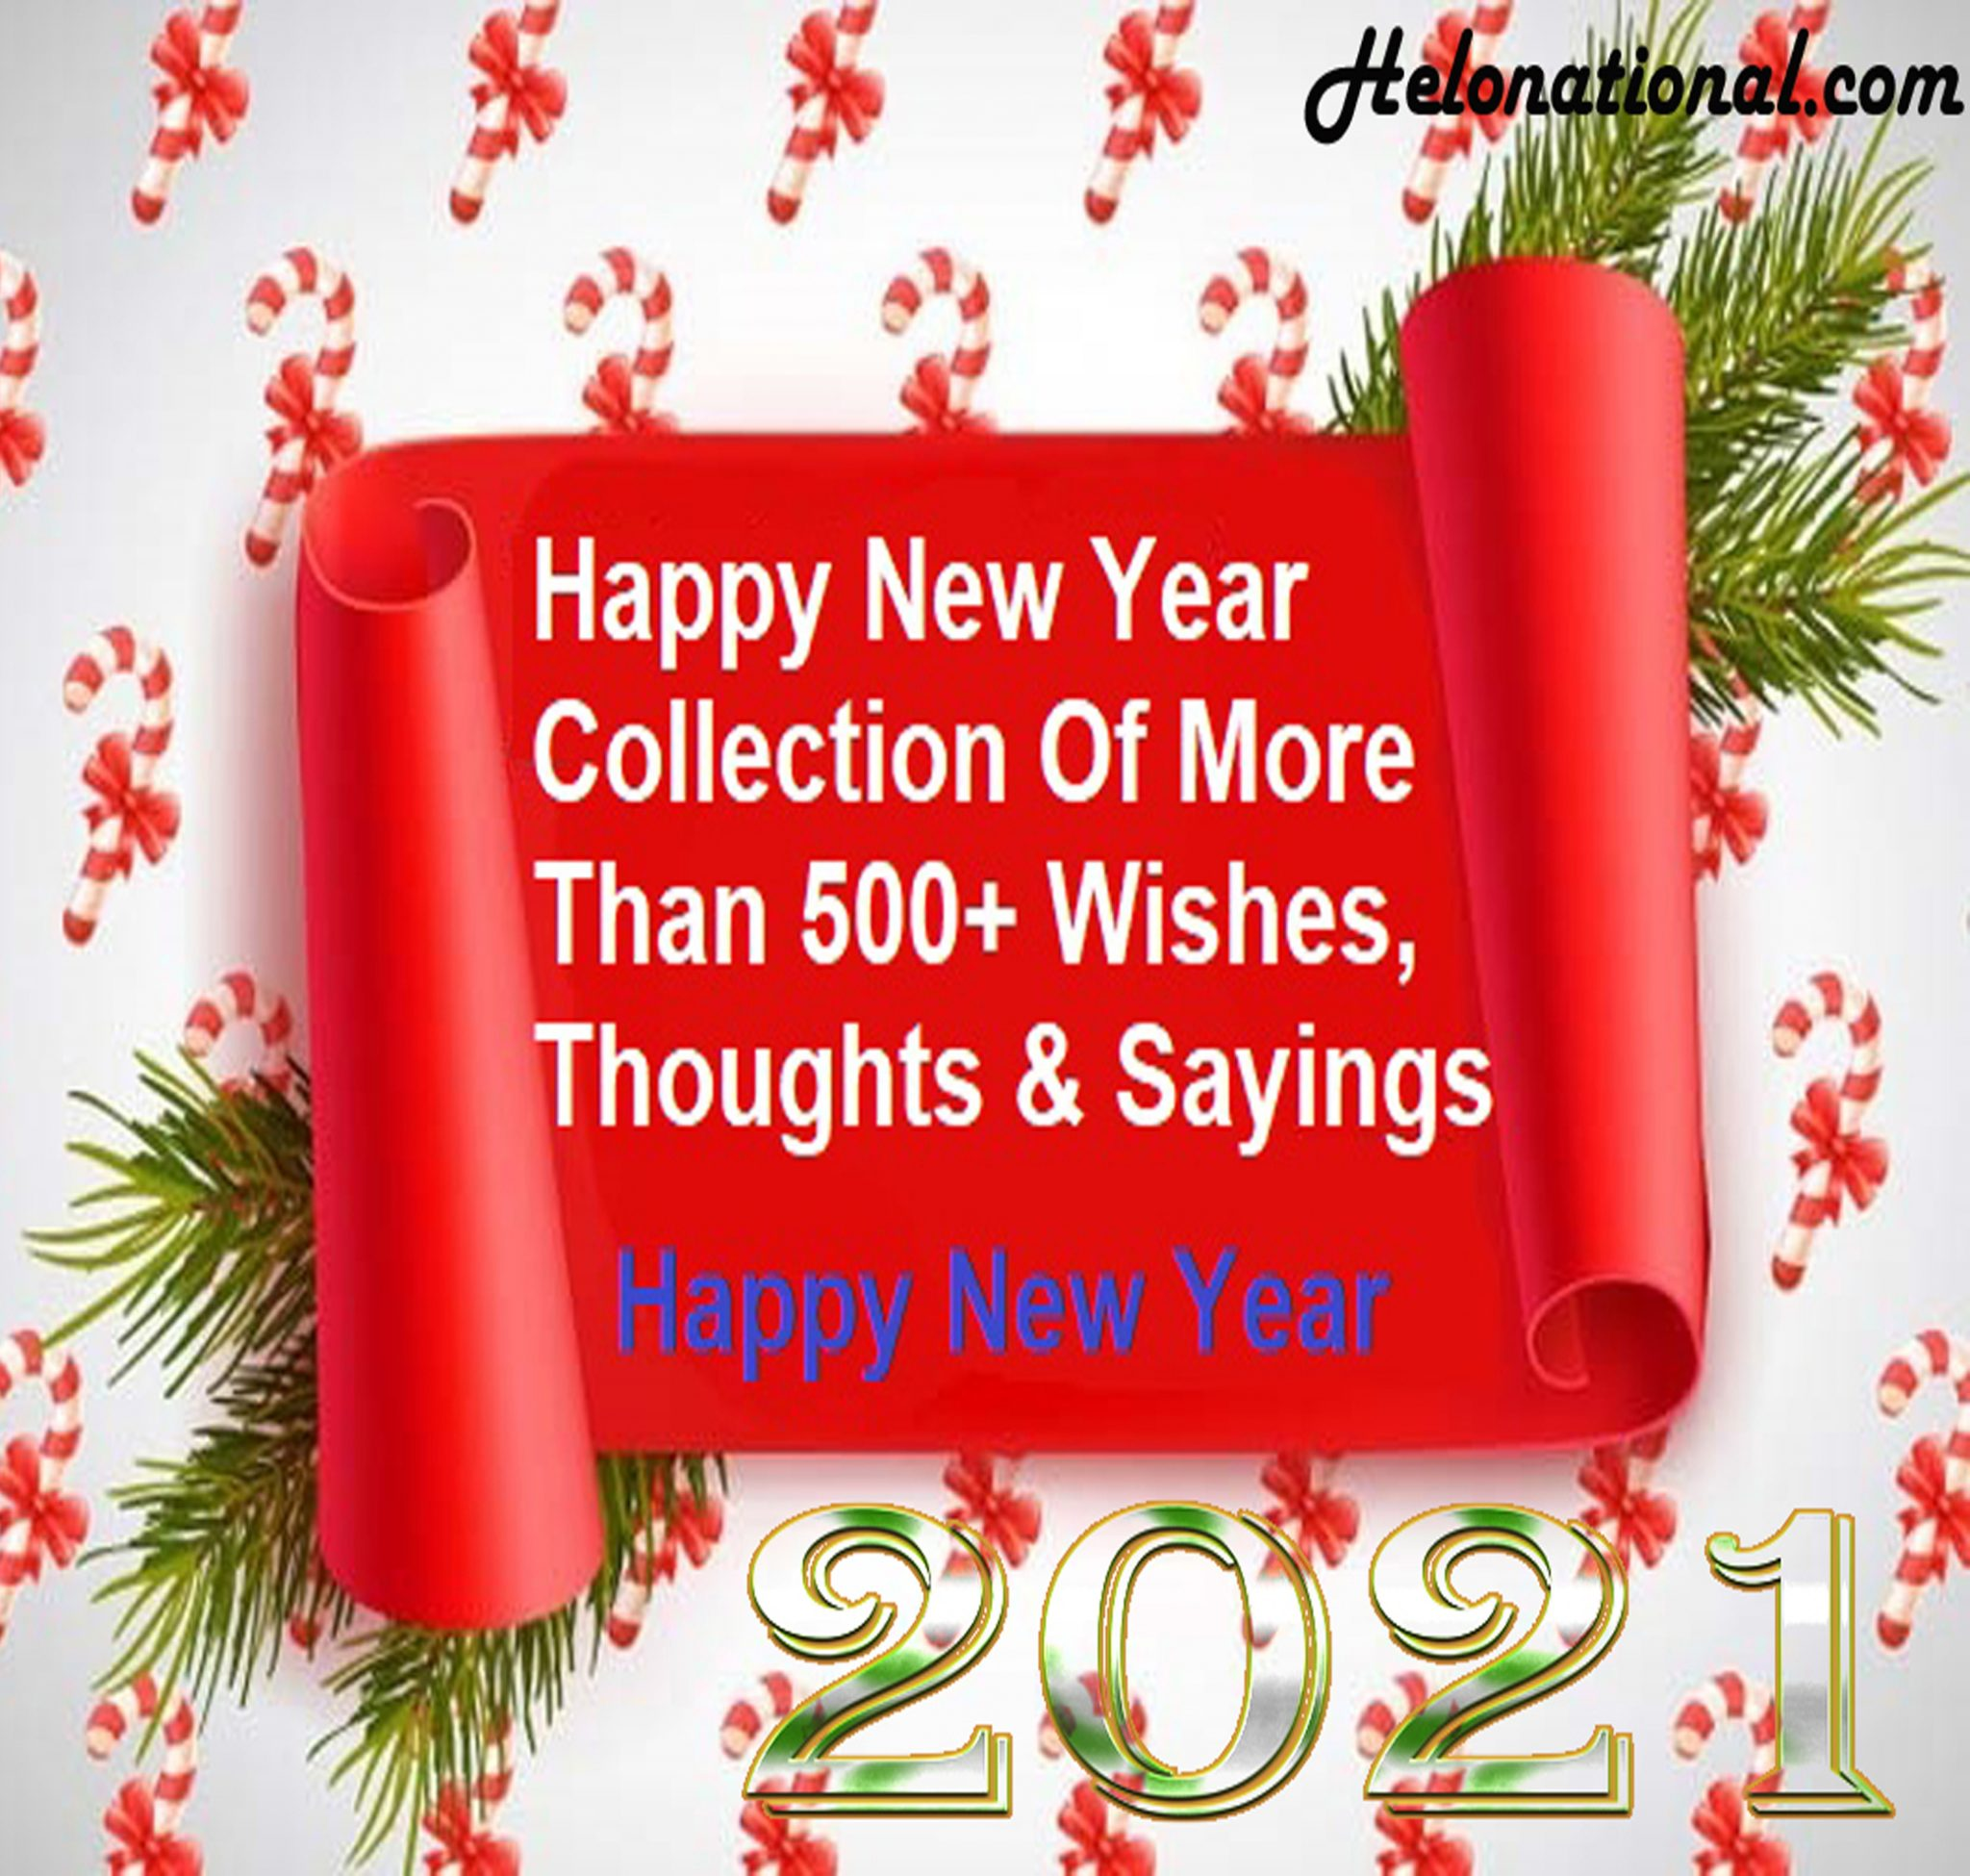 Happy new year 2021 family quotes hd images